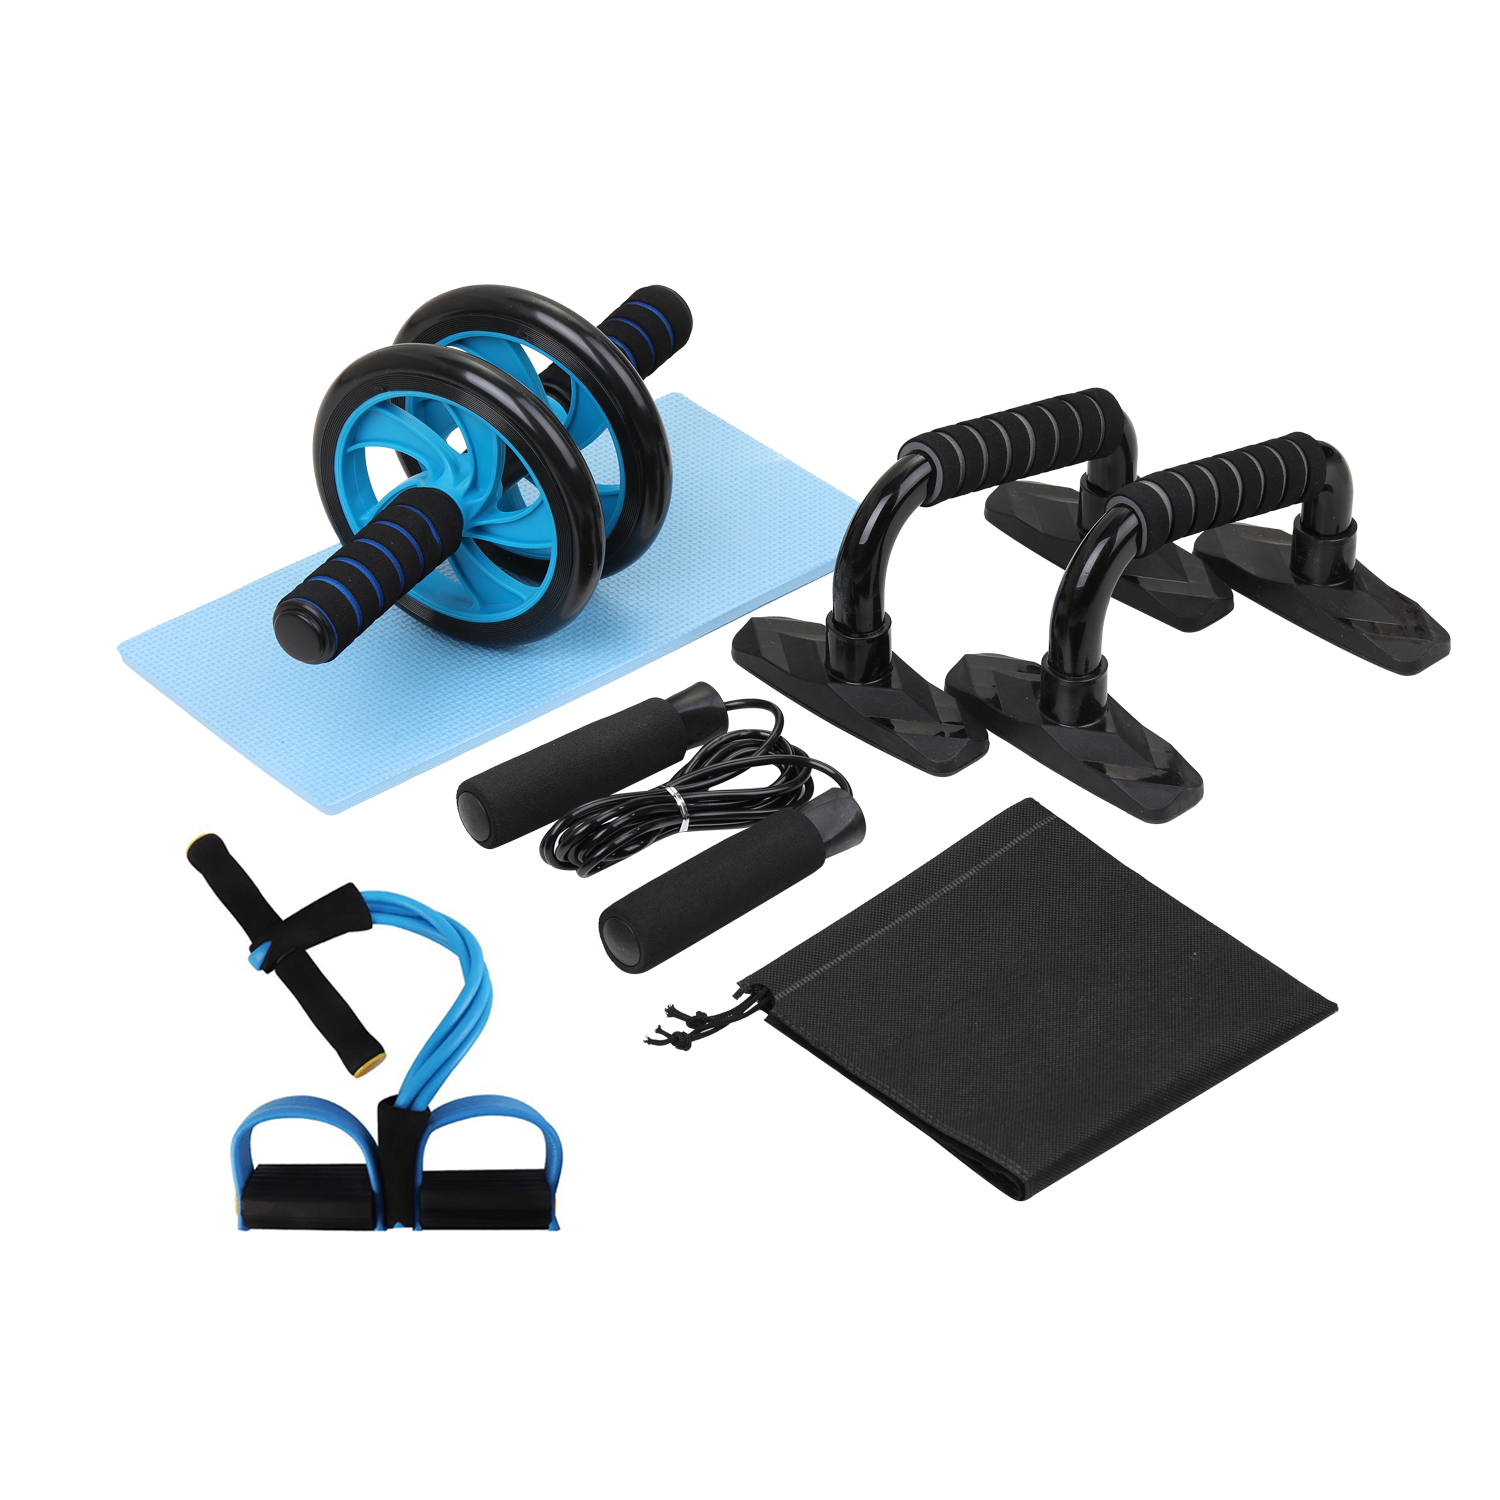 H56aa359c99ff408fb6ba514fdbc71458f - 5-in-1 AB Roller Kit Abdominal Press Wheel Pro with Push-UP Bar Jump Rope Knee Pad Gym Home Exercise  Fitness Equipment